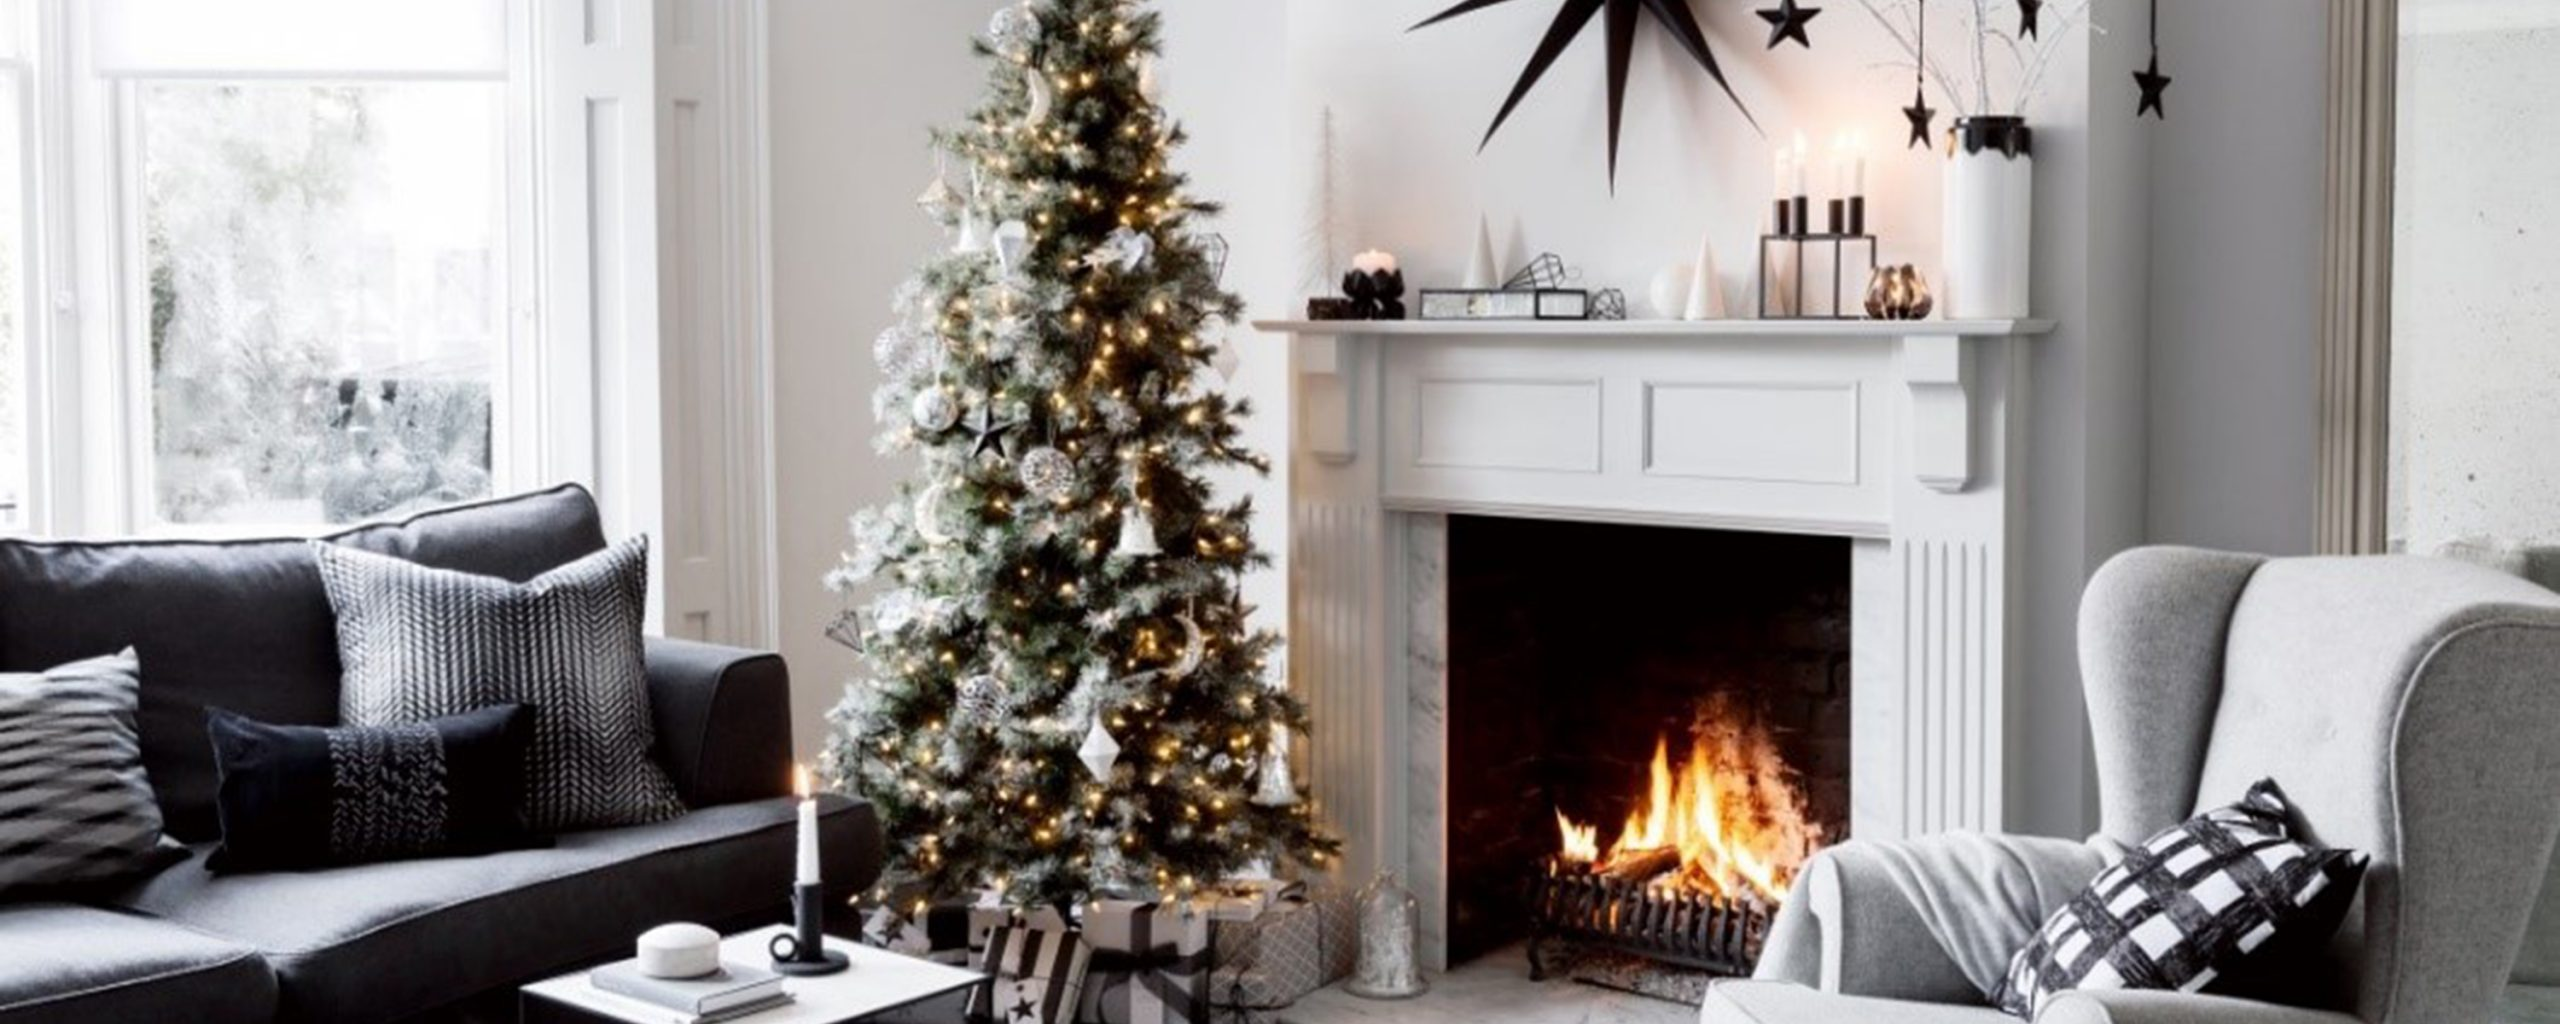 AN INTERIOR DESIGN GUIDE TO HOSTING A SPECTACULAR CHRISTMAS AT HOME